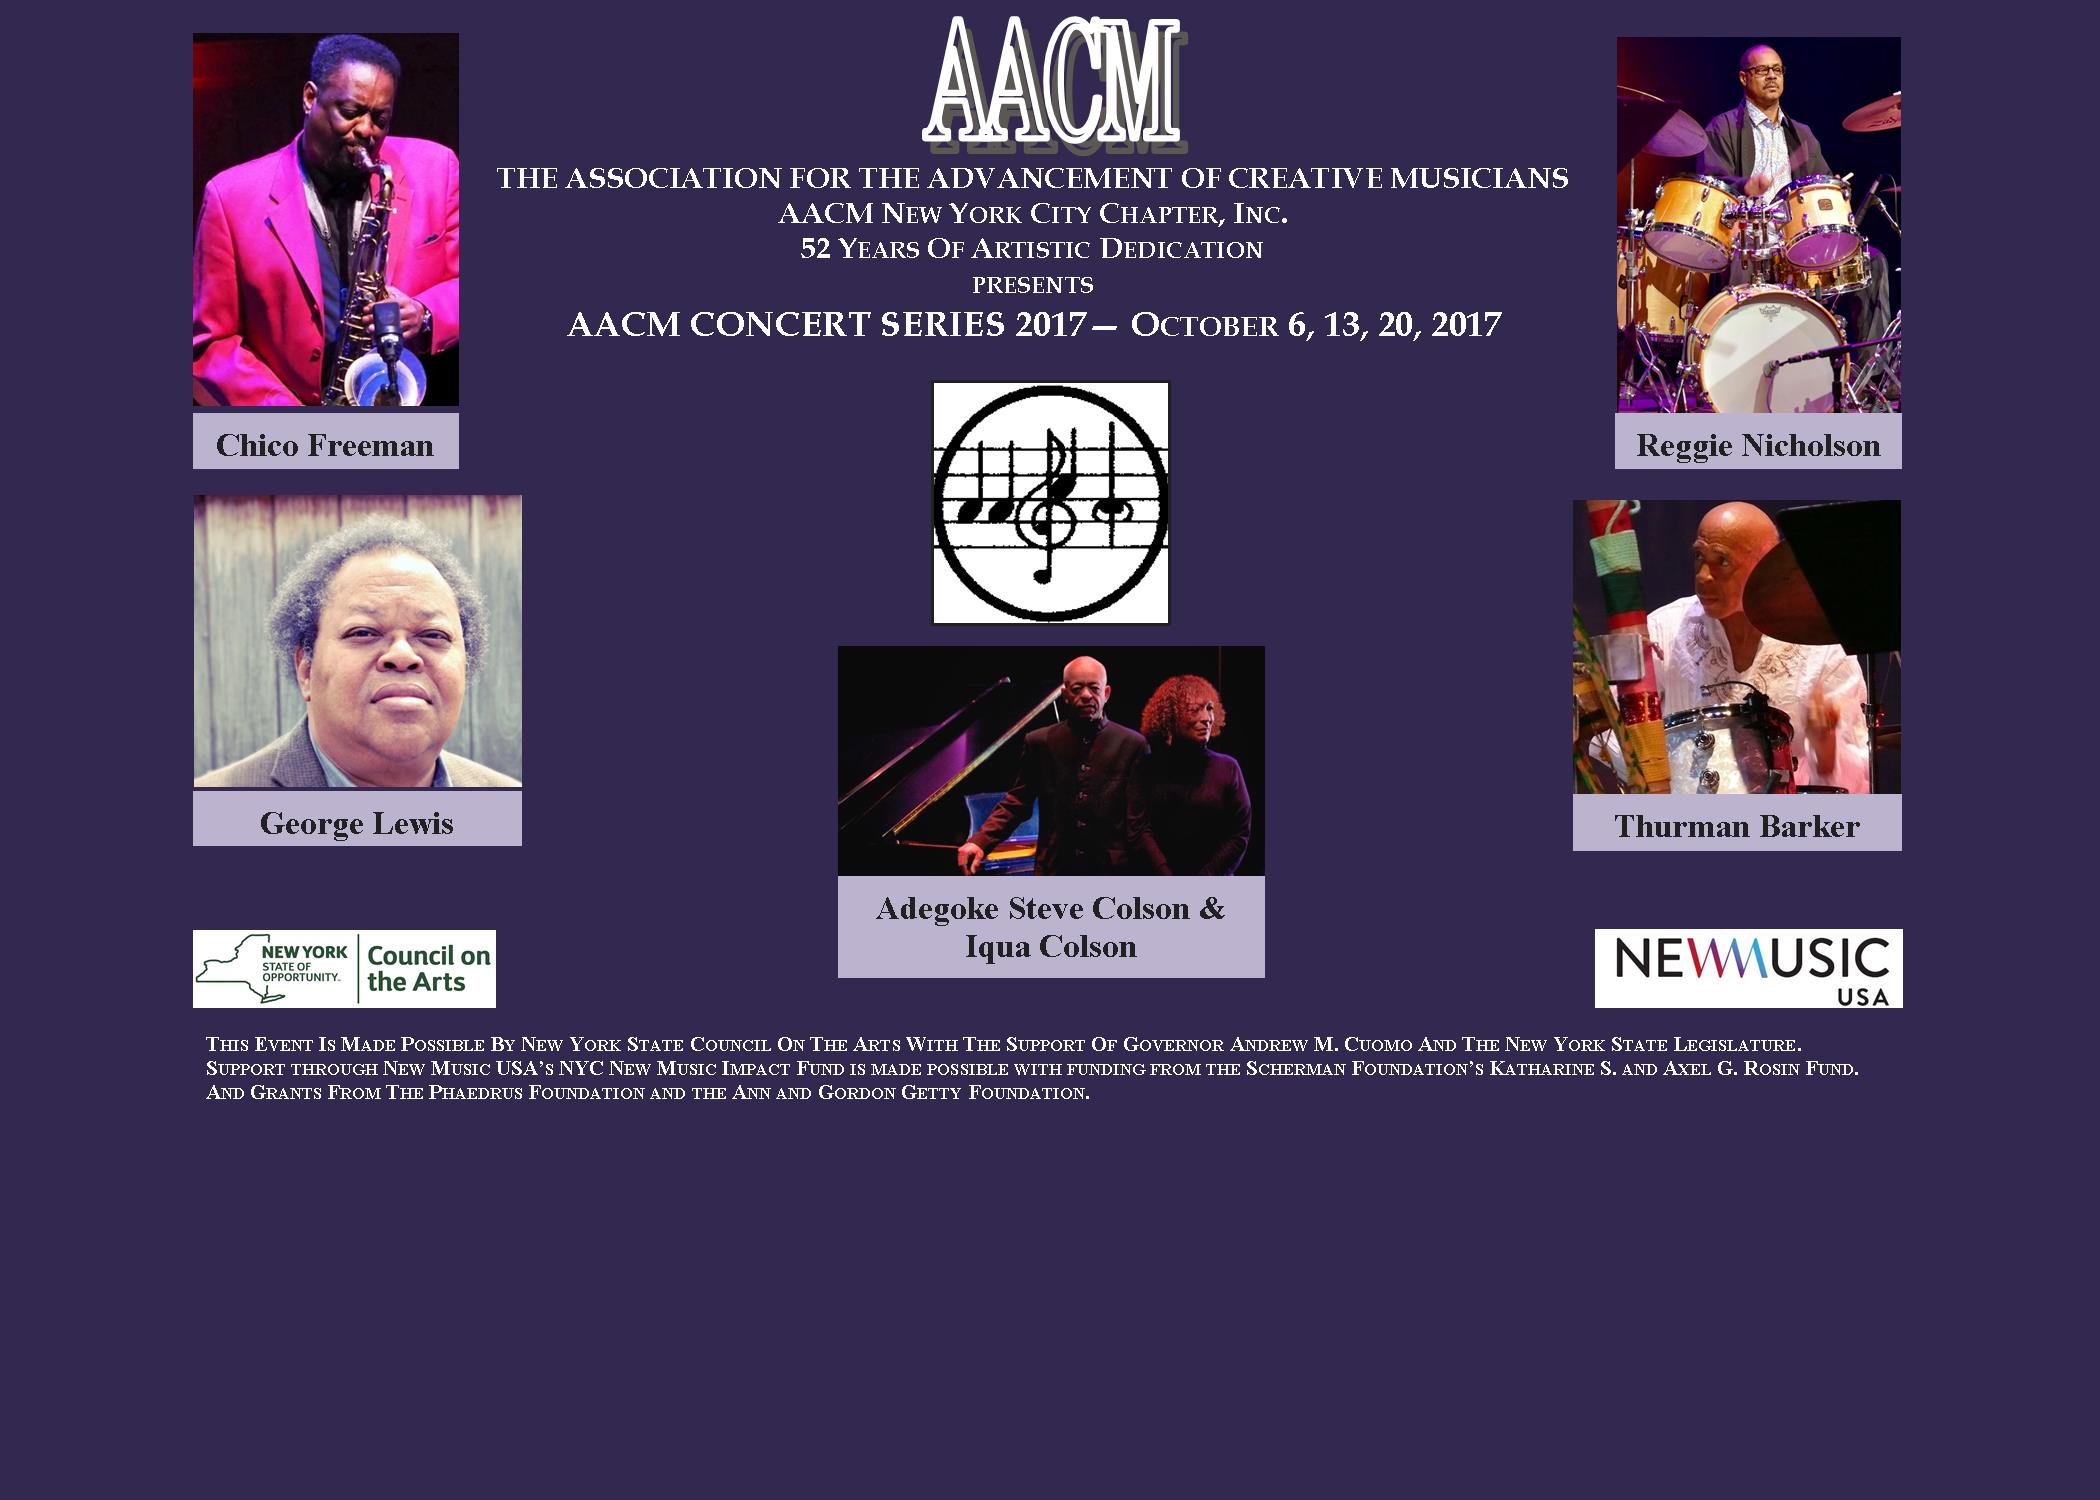 Image for AACM New York City Chapter, Inc. Concert Series October 6, 13, 20, 2017